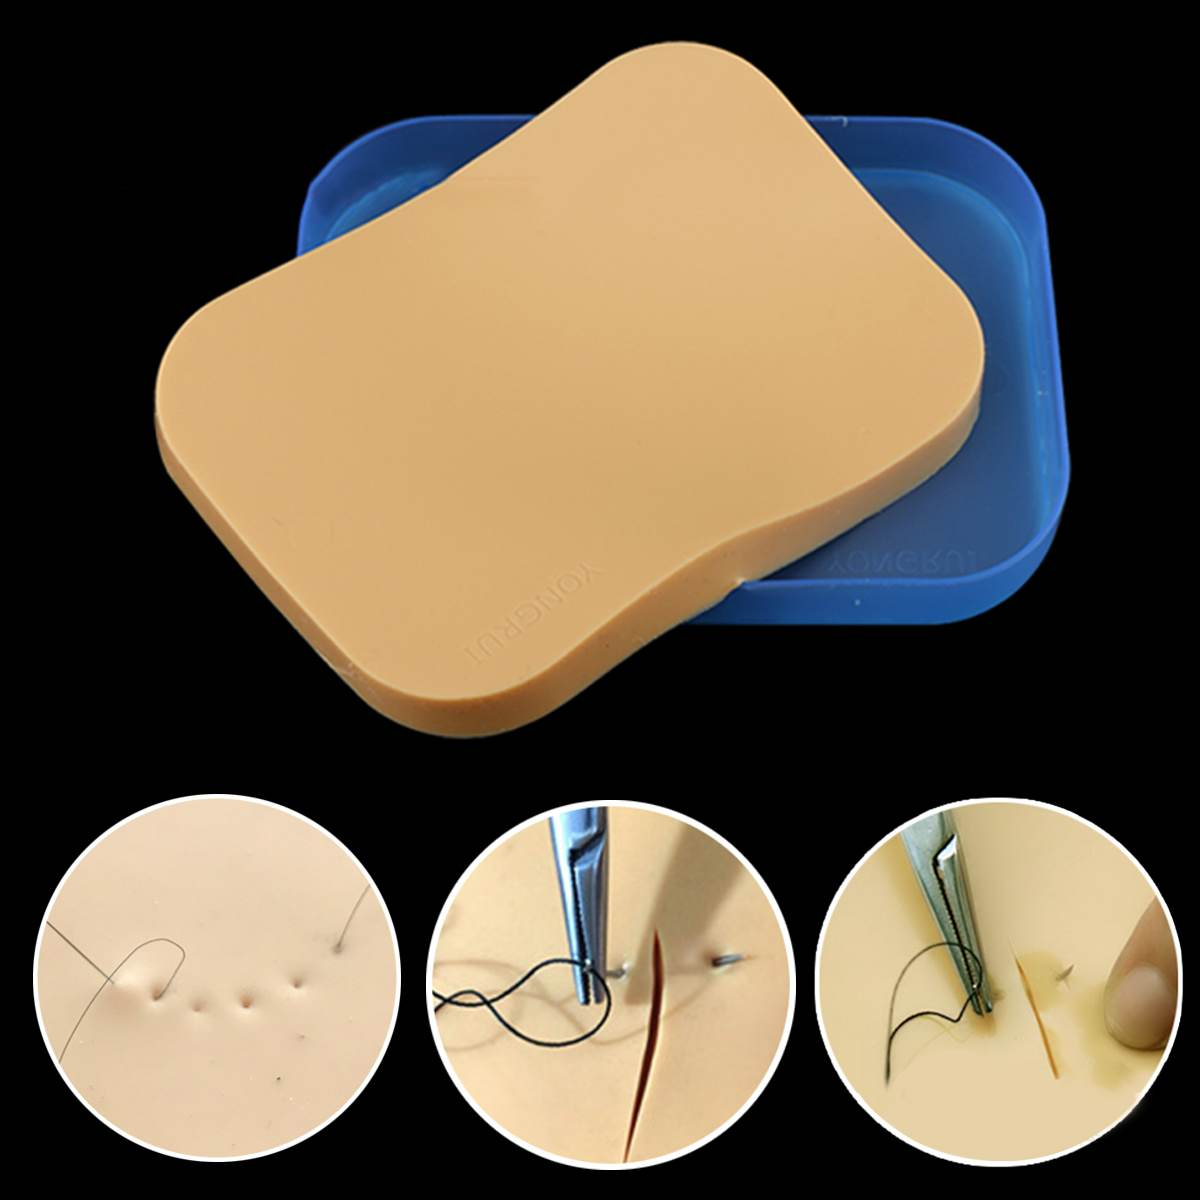 15X11X1.1cm Surgical Sutured Practice Training Skin Model Silicone Simulation Skin Model School Educational Medical Supply New